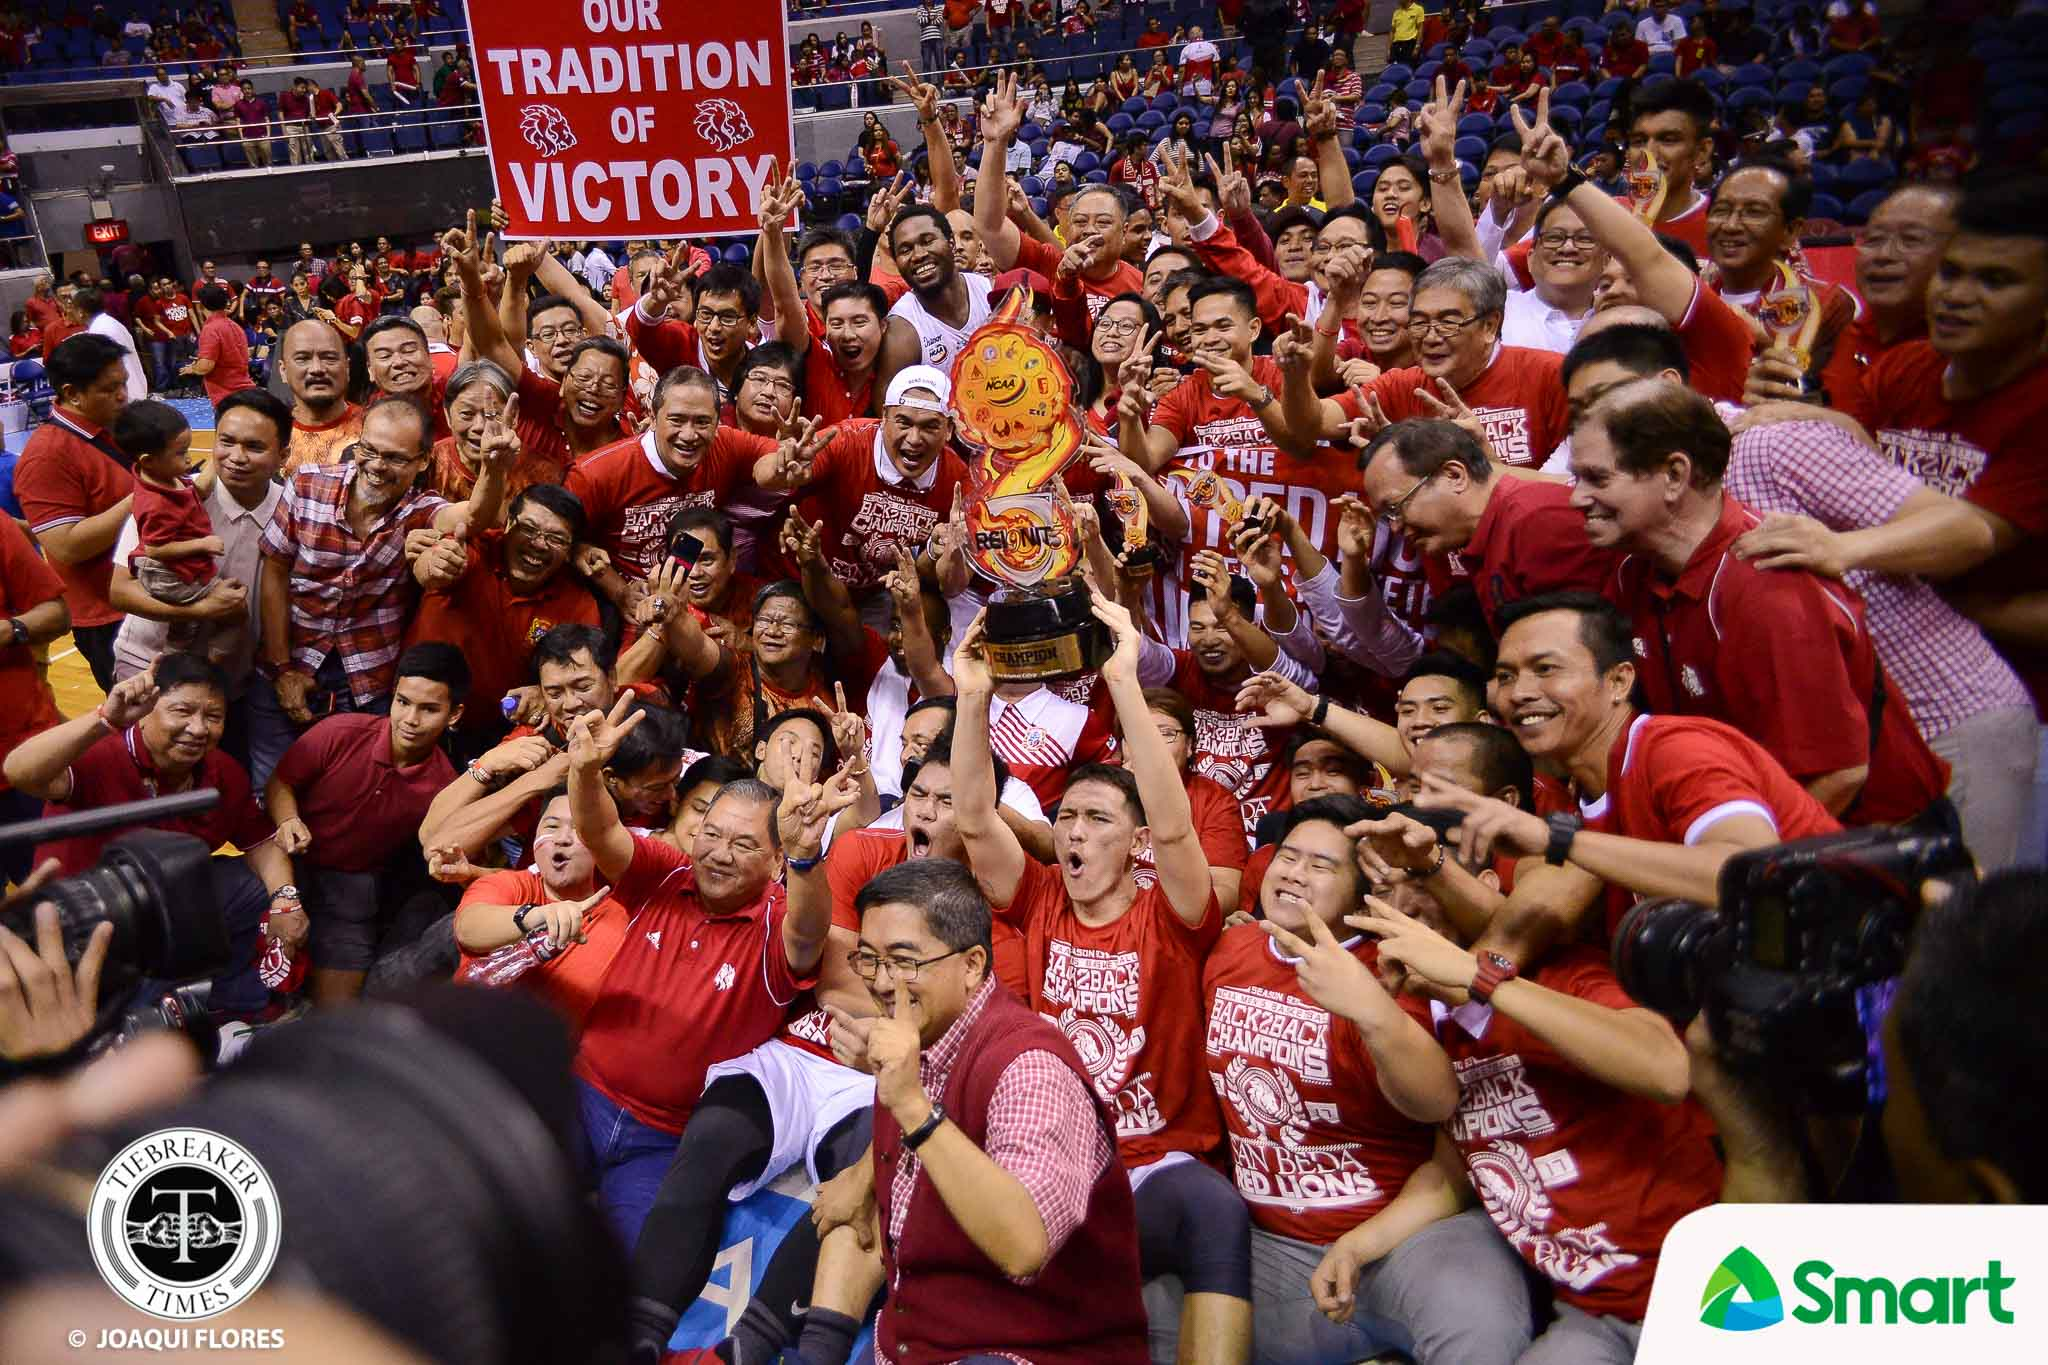 Philippine Sports News - Tiebreaker Times San Beda reloads for upcoming campaign and the future Basketball NCAA News SBC  Sean Garcia San Beda Seniors Basketball Peter Alfaro NCAA Season 94 Seniors Basketball NCAA Season 94 Jude Roque Joshua Tagala Jason Canlas Evan Nelle Damie Cuntapay Carlo Obenza Alex Visser